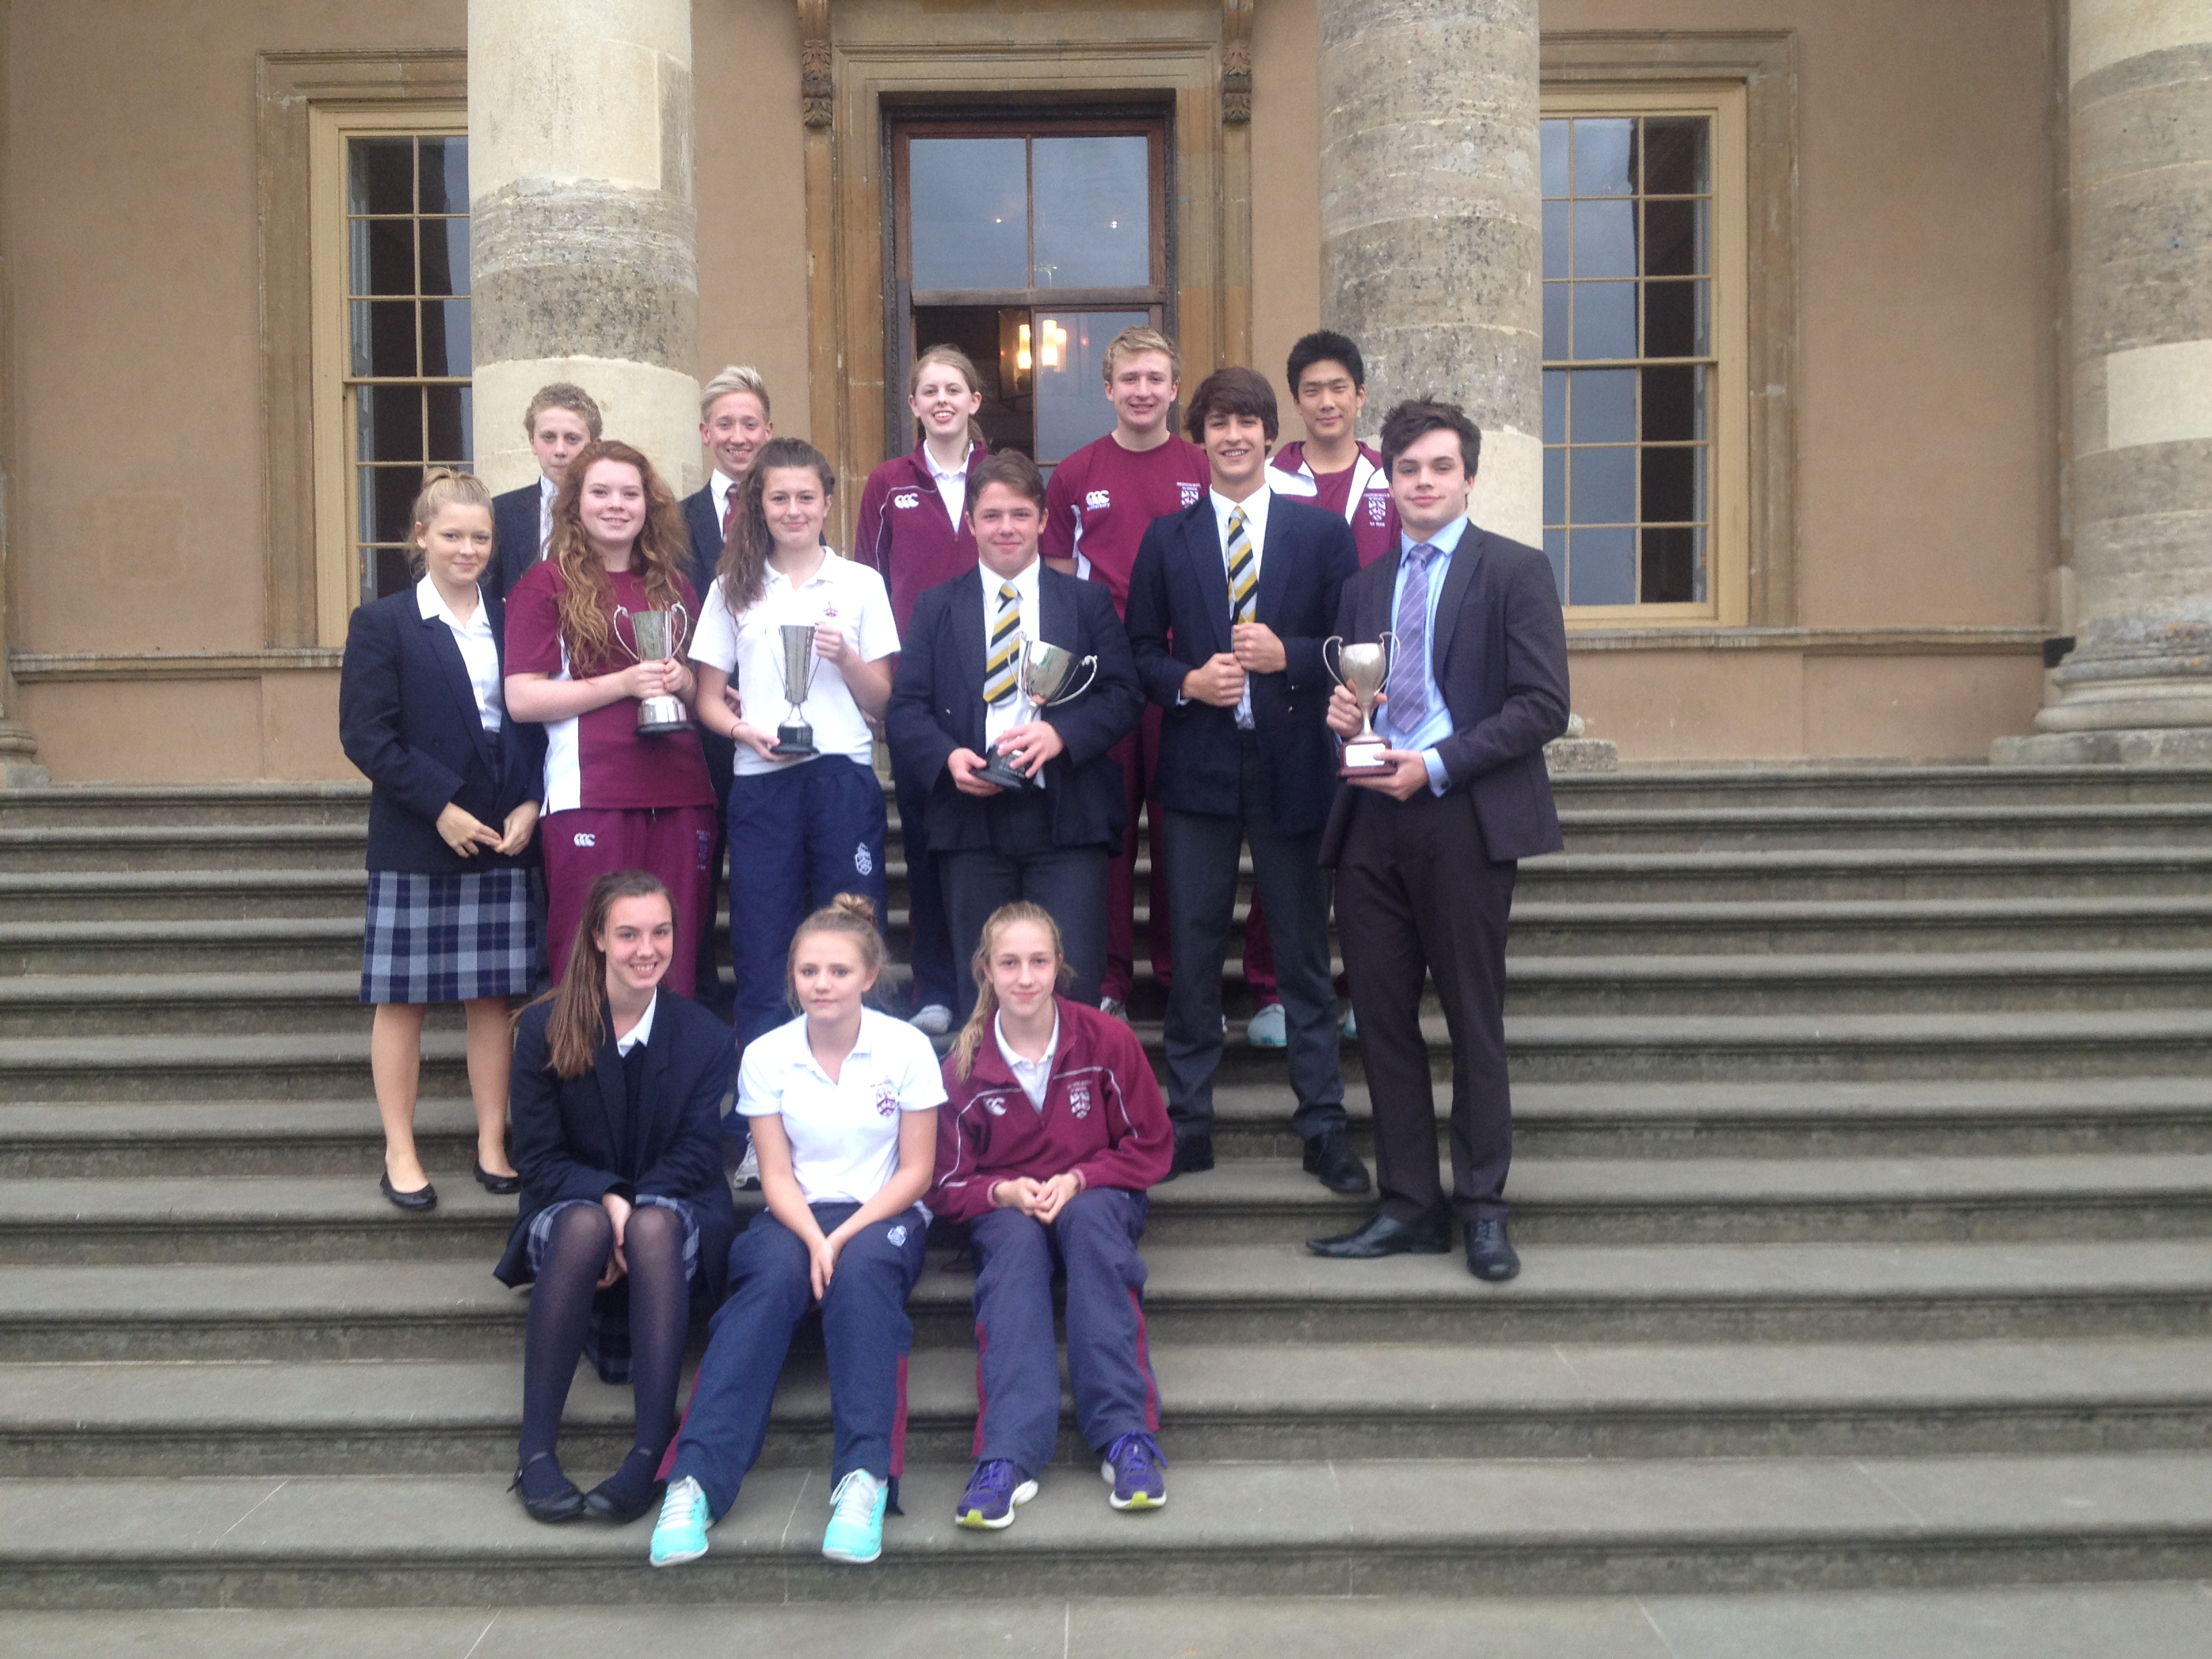 Swimmers have a successful time at the Stowe School